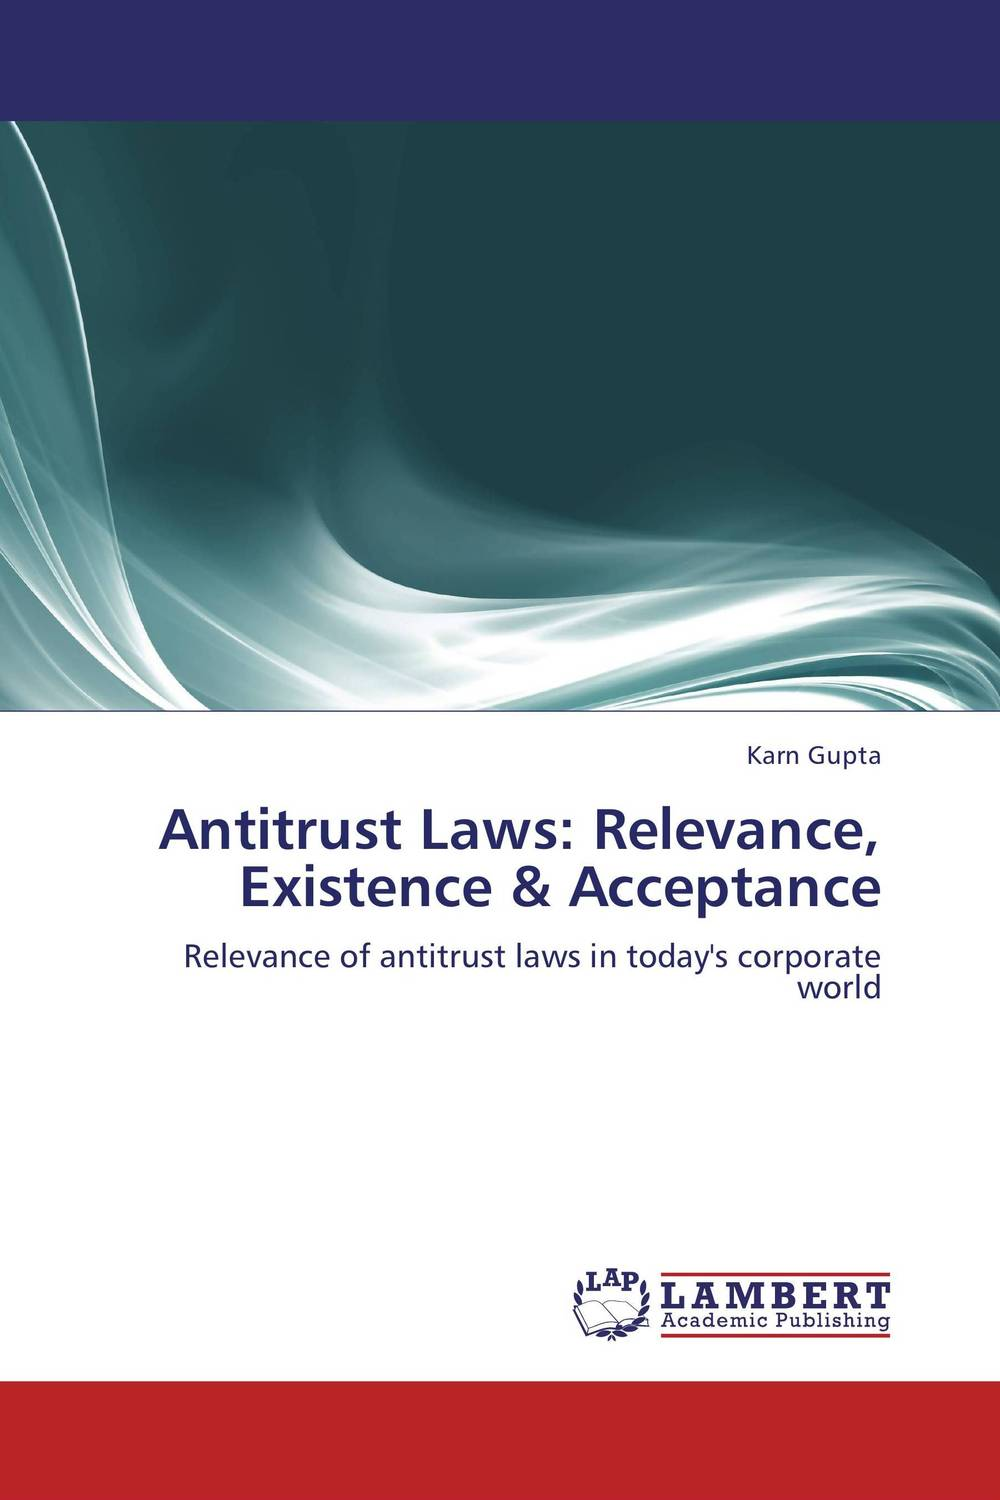 Antitrust Laws: Relevance, Existence & Acceptance seeing things as they are